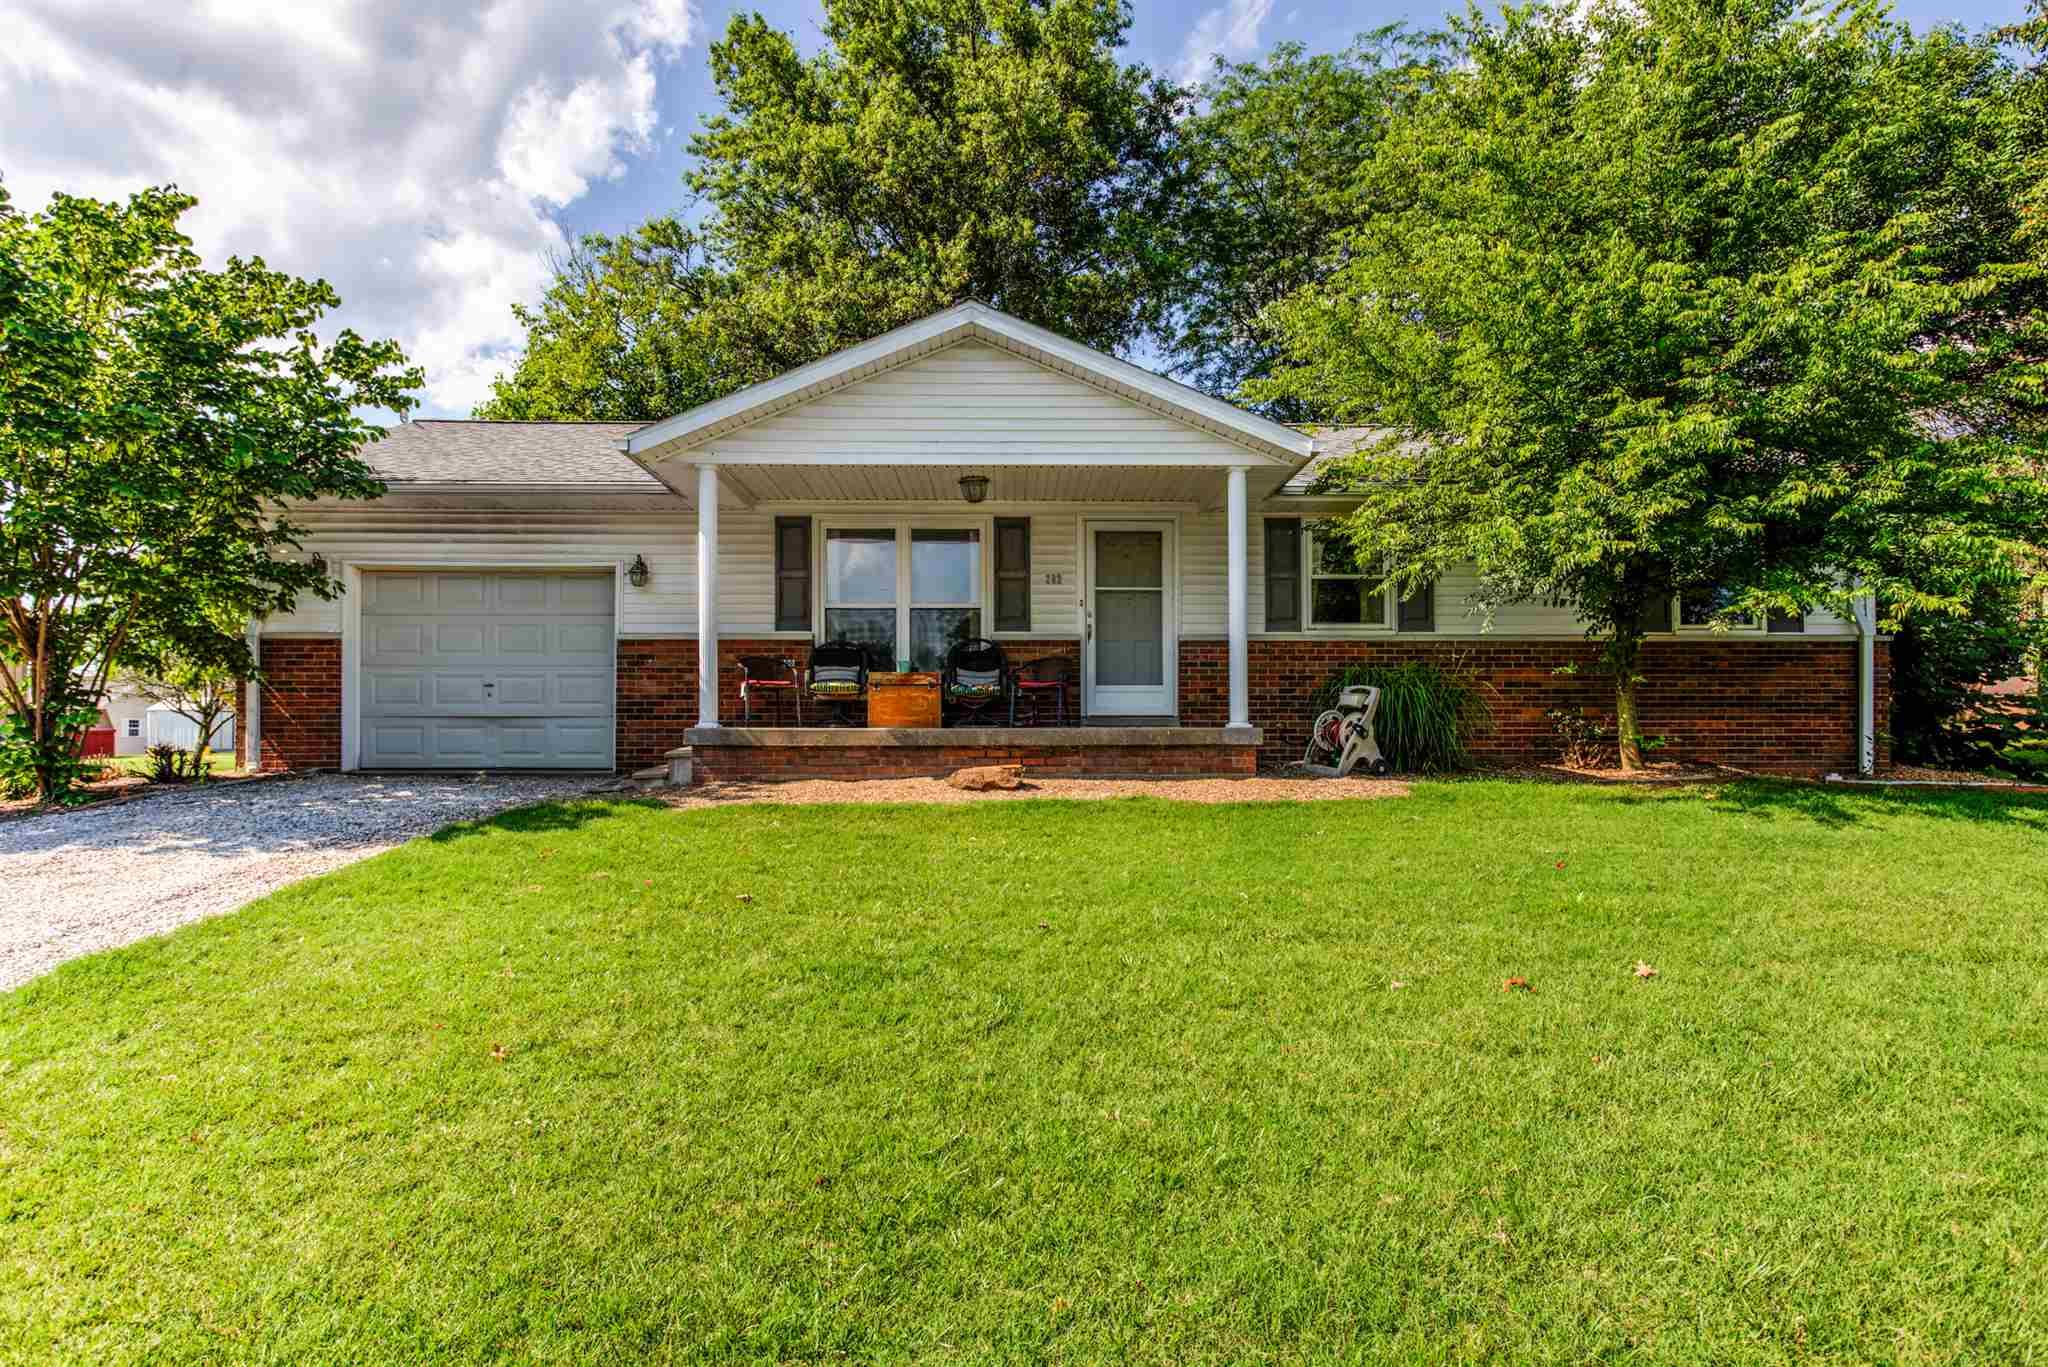 Fantastic family home on quiet lot with plenty of space indoors and out. This 3 bed 2 bath home features a sun room that opens to shaded backyard with a fish pond.  The eat in kitchen opens to the sun room and back patio area for easy entertainment space. There is a single car attached garage.   Behind the home is a two car detached garage for storage and other projects.  The home has a full basement that is partially finished.  Newer paint and floor coverings make the home ready to move in. Great setting with mature trees in a very nice neighborhood.